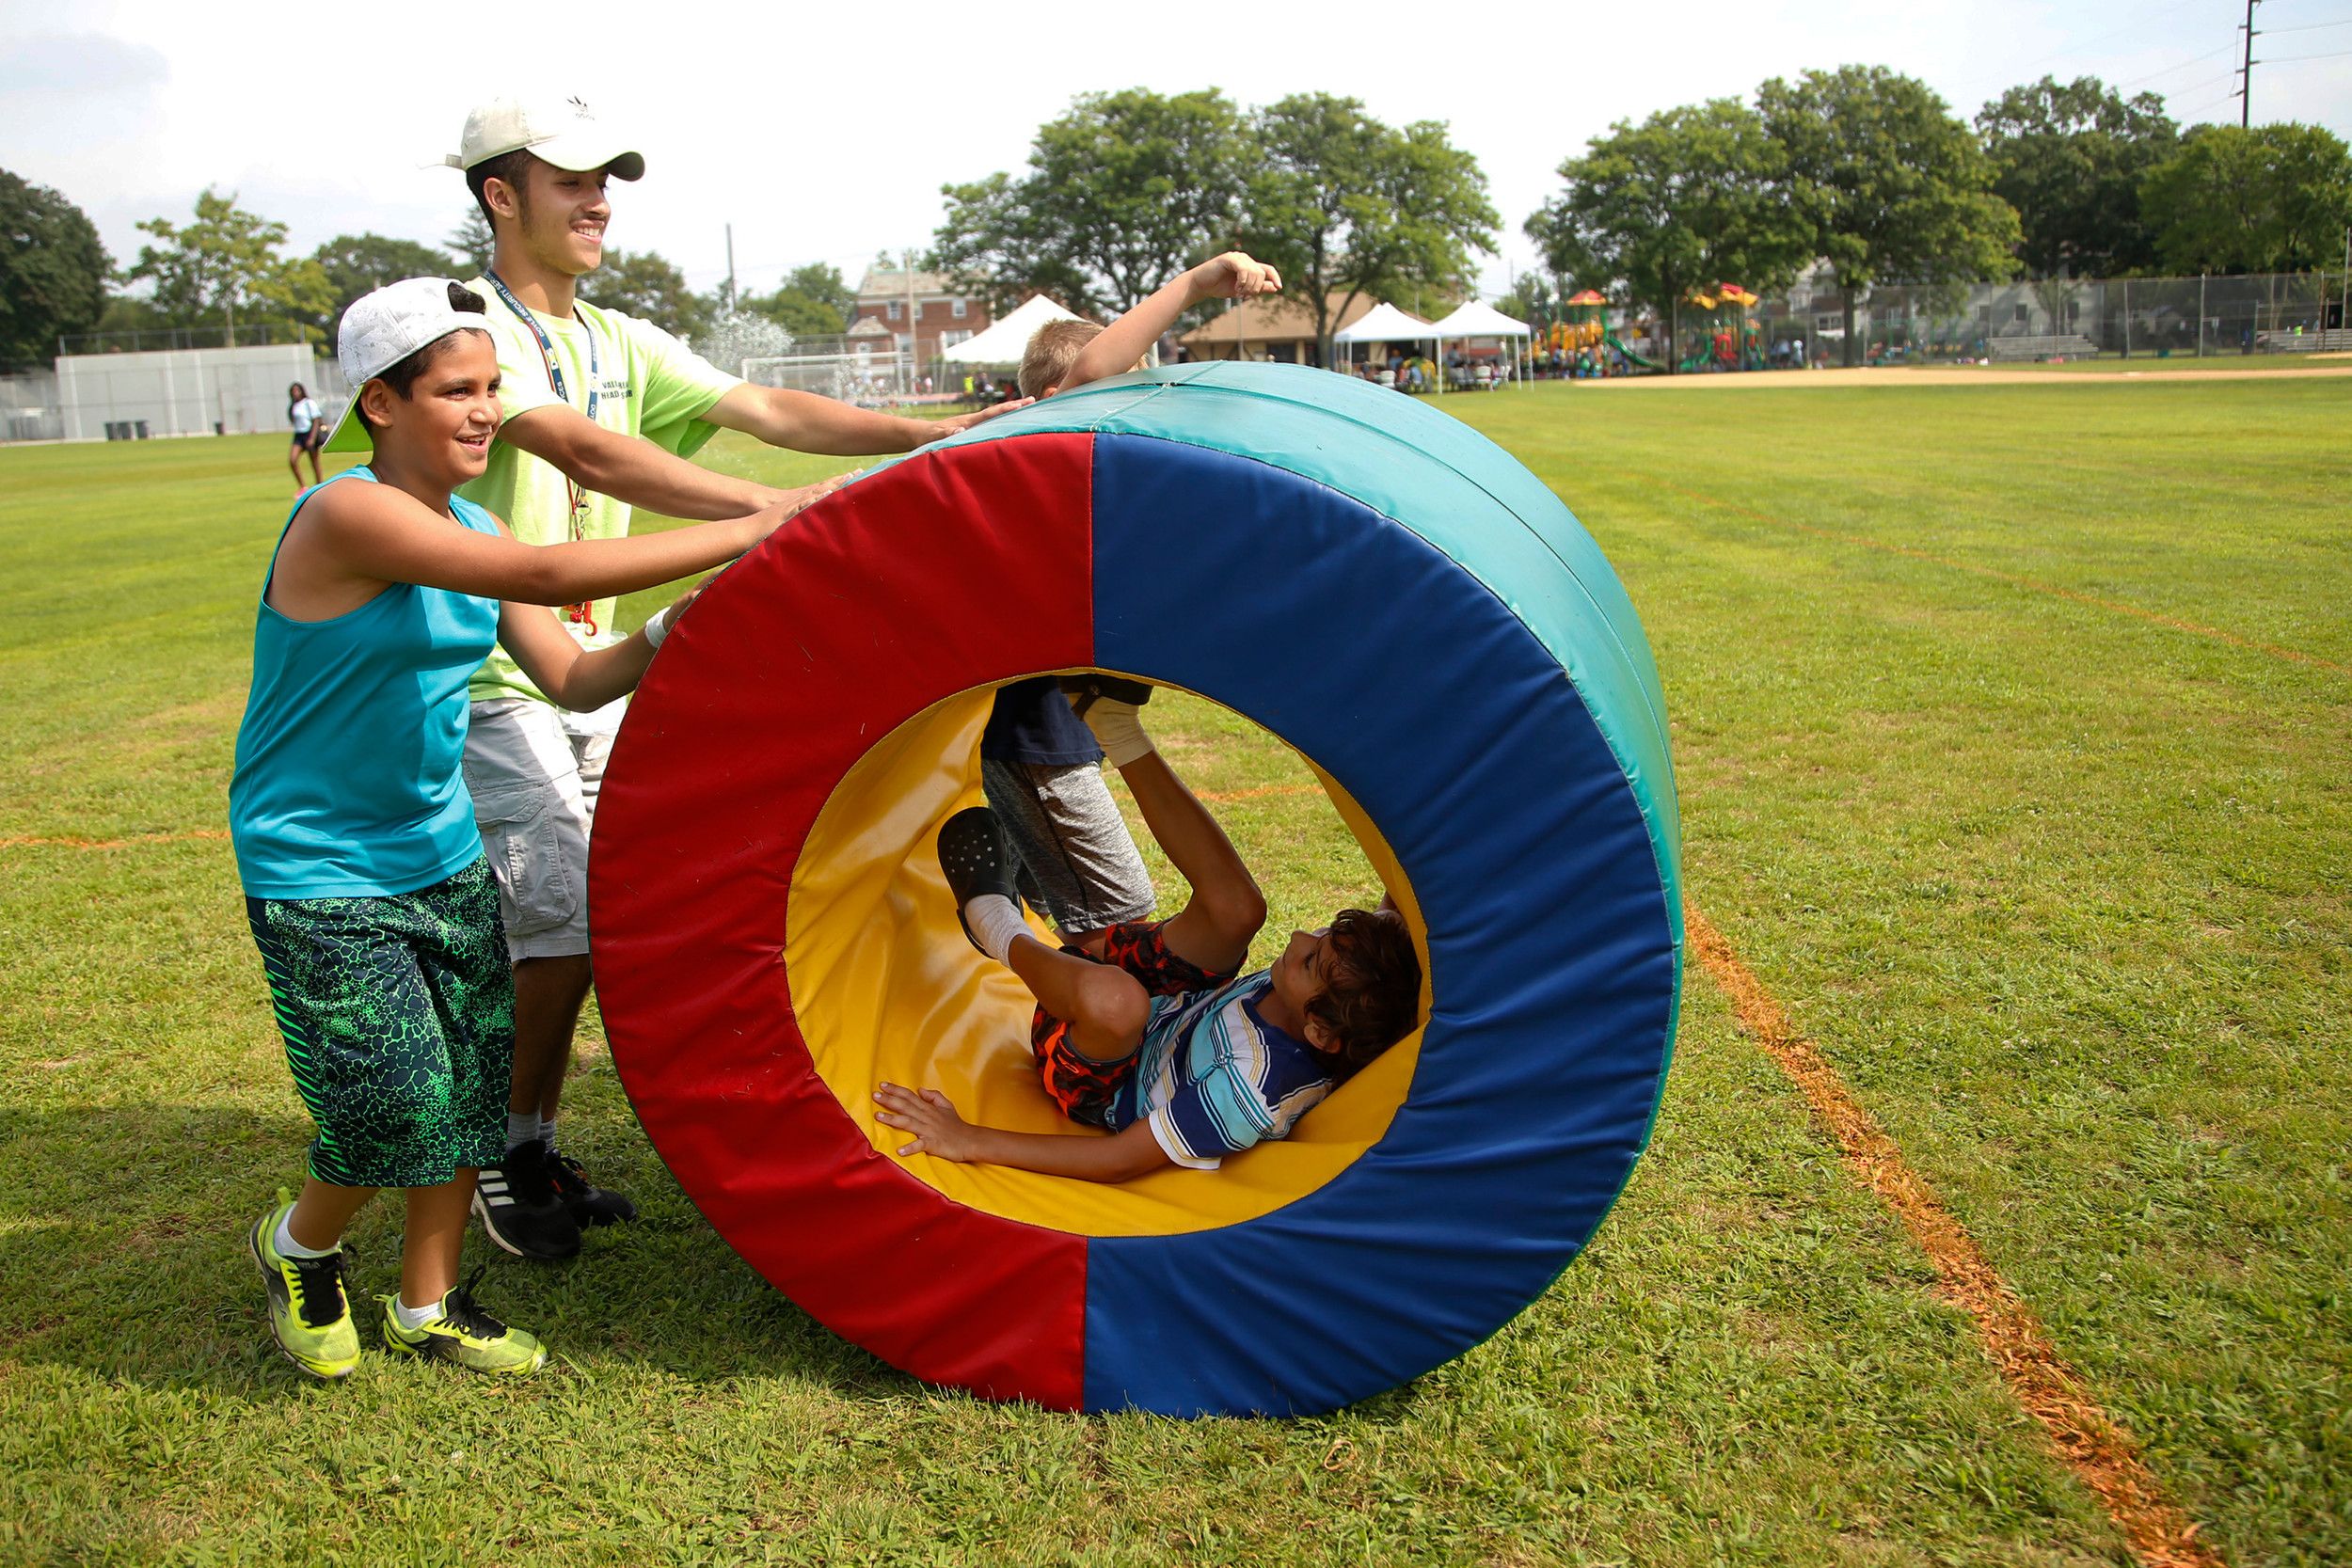 Counselor Melvin Fuentes and Ebraam Abdou, 9, rolled Rafael Liranzo, 8, around.